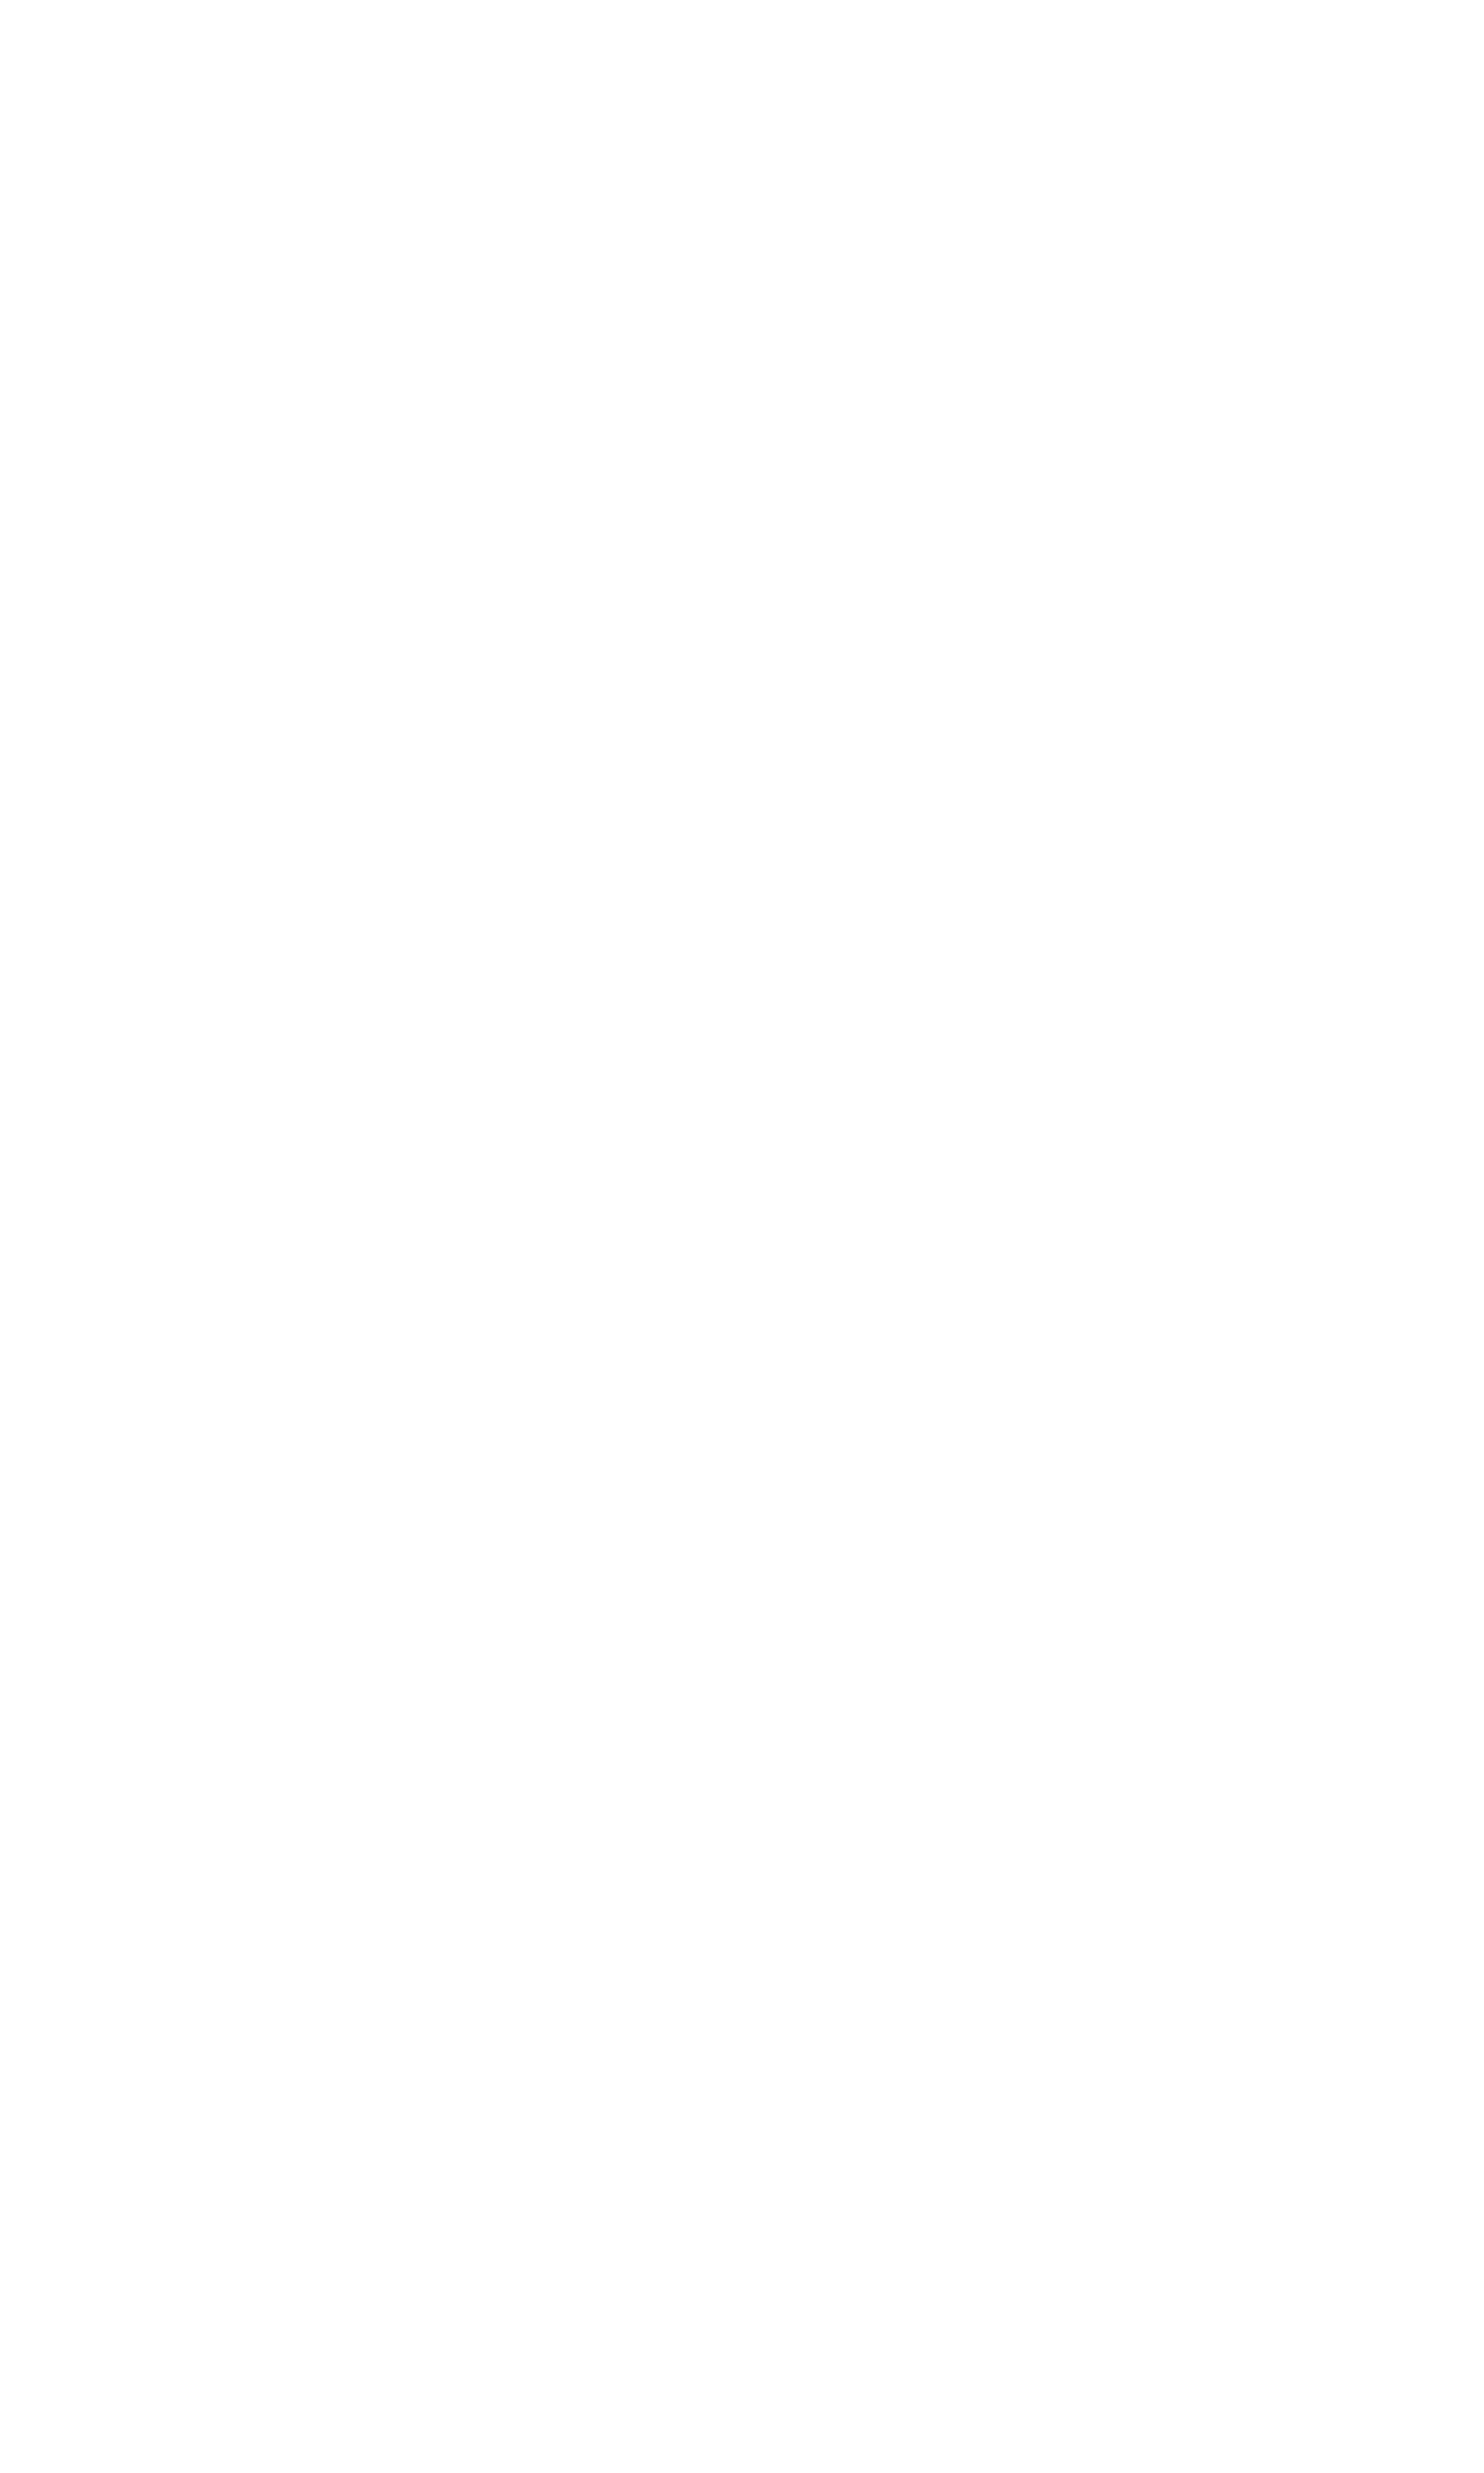 Masterbuilt 36 in Charcoal Grill Schematic